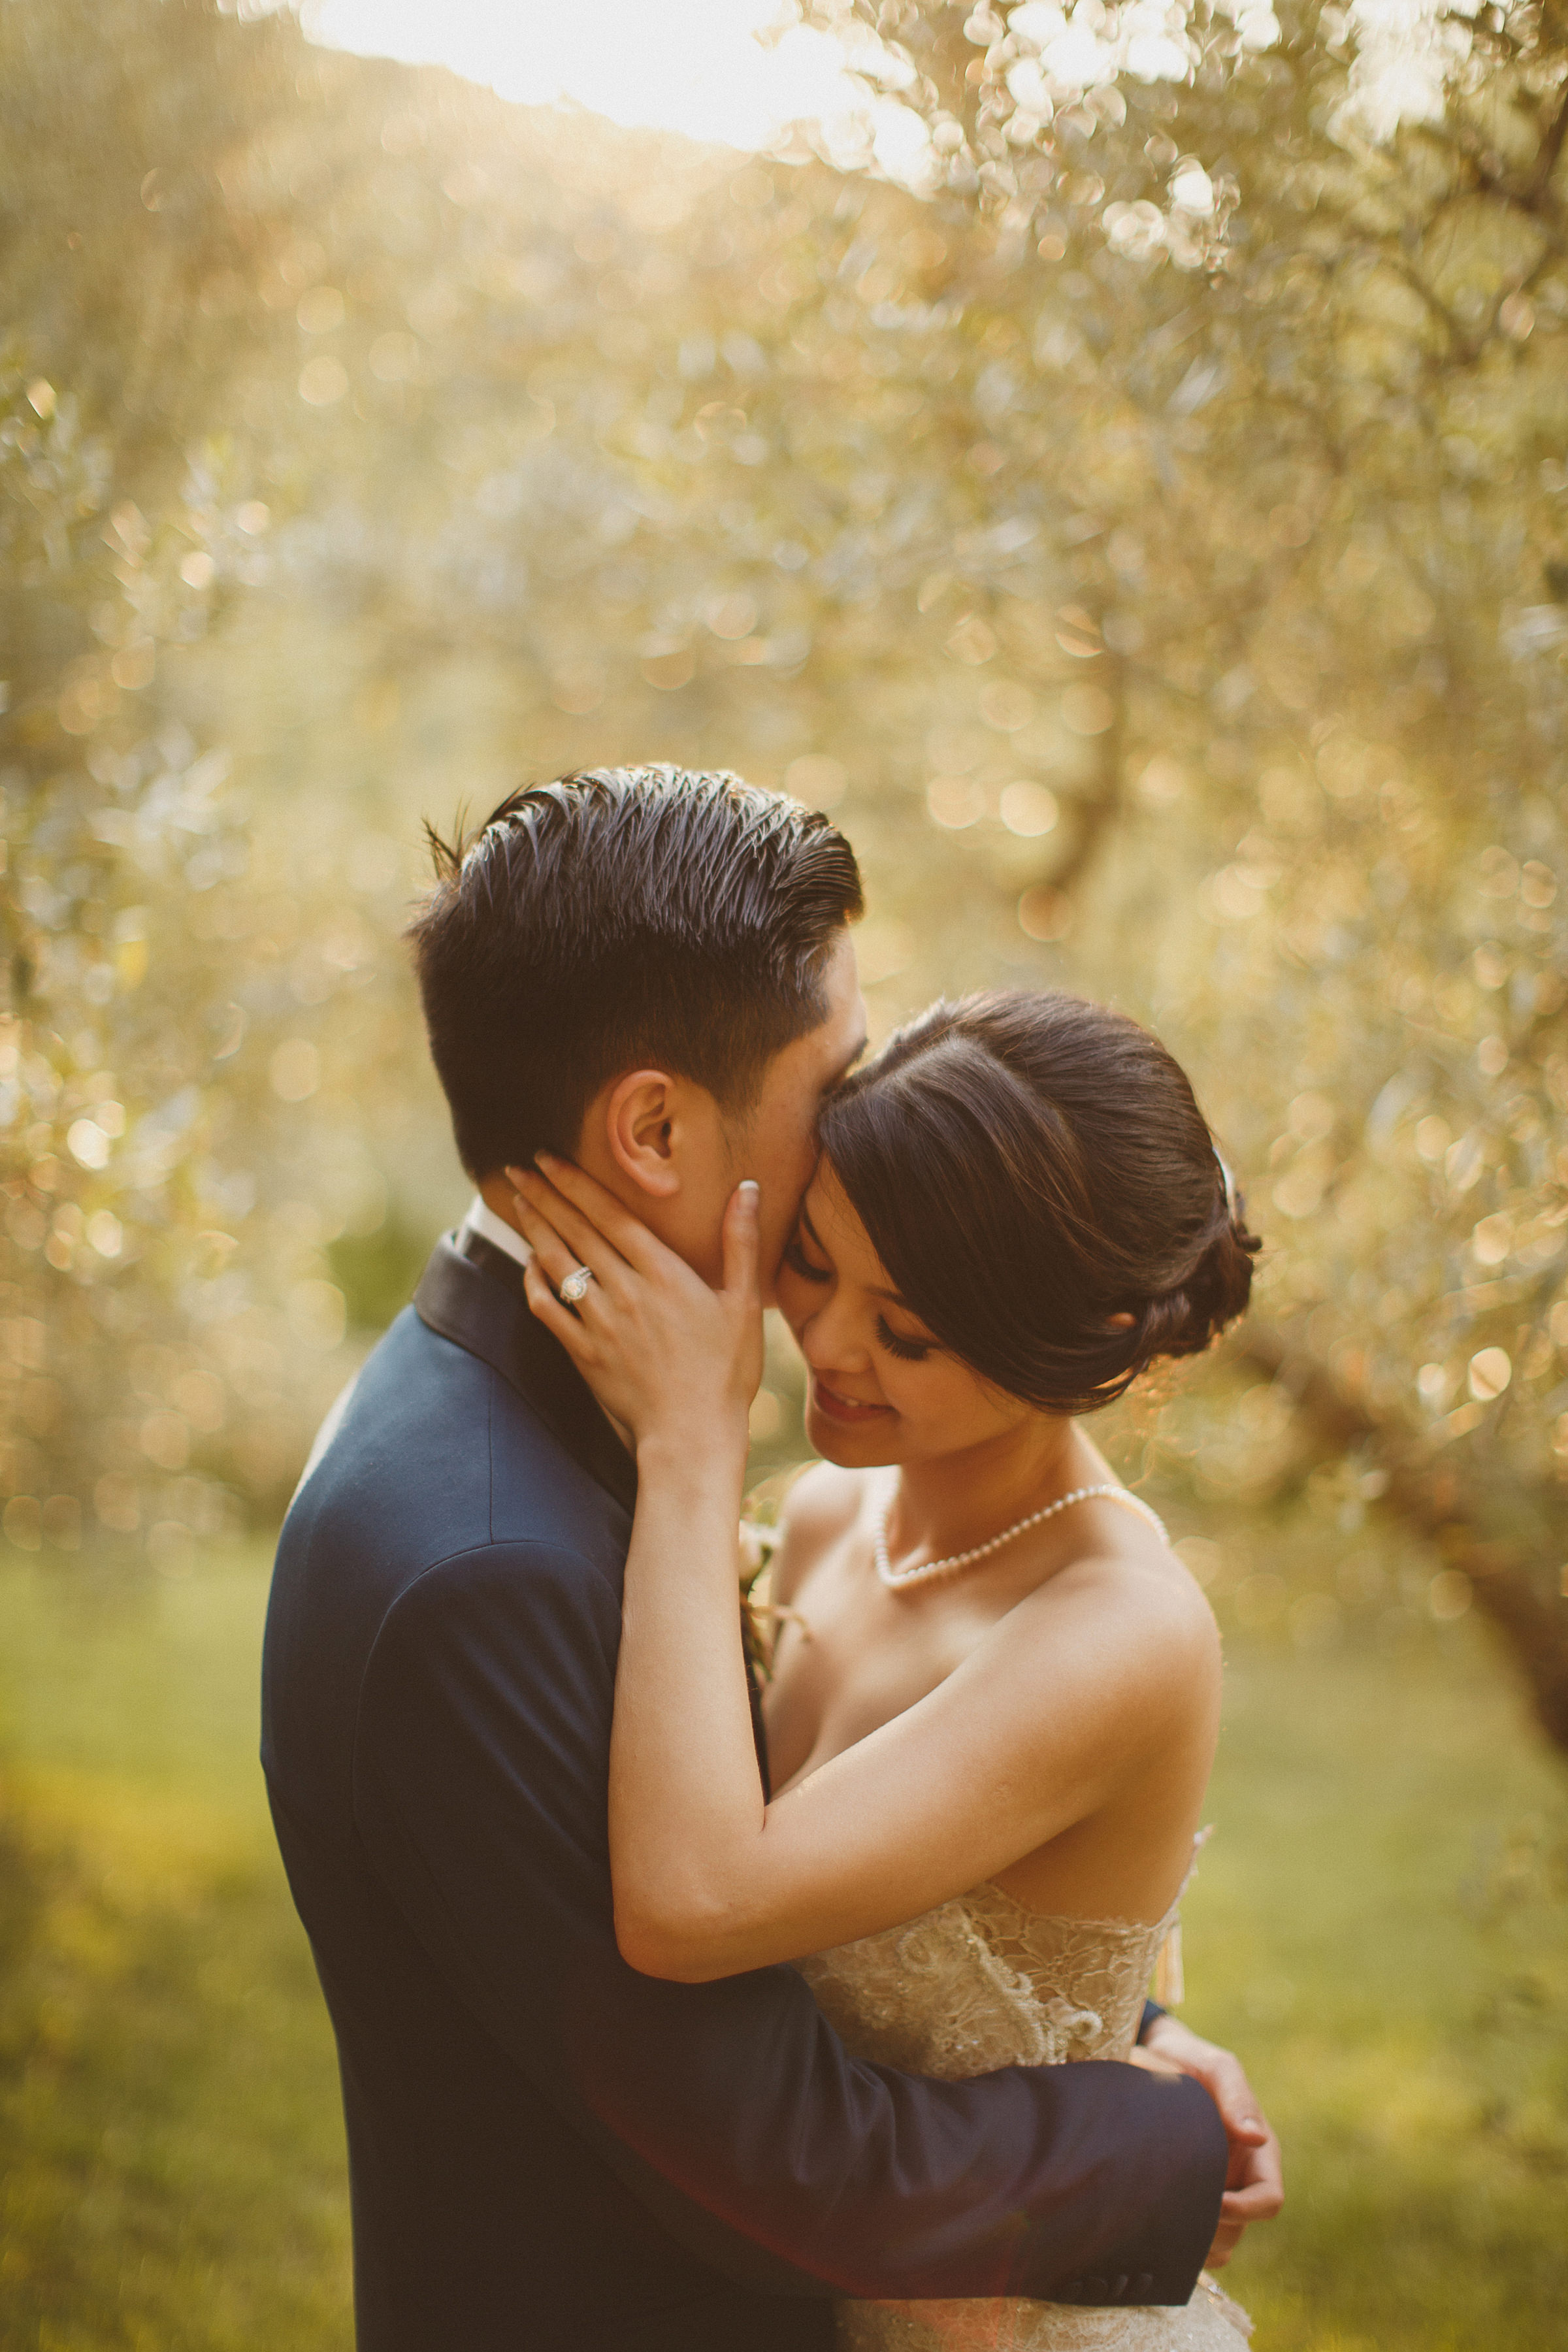 sweet-couple-portrait-against-trees-ed-peers-photography